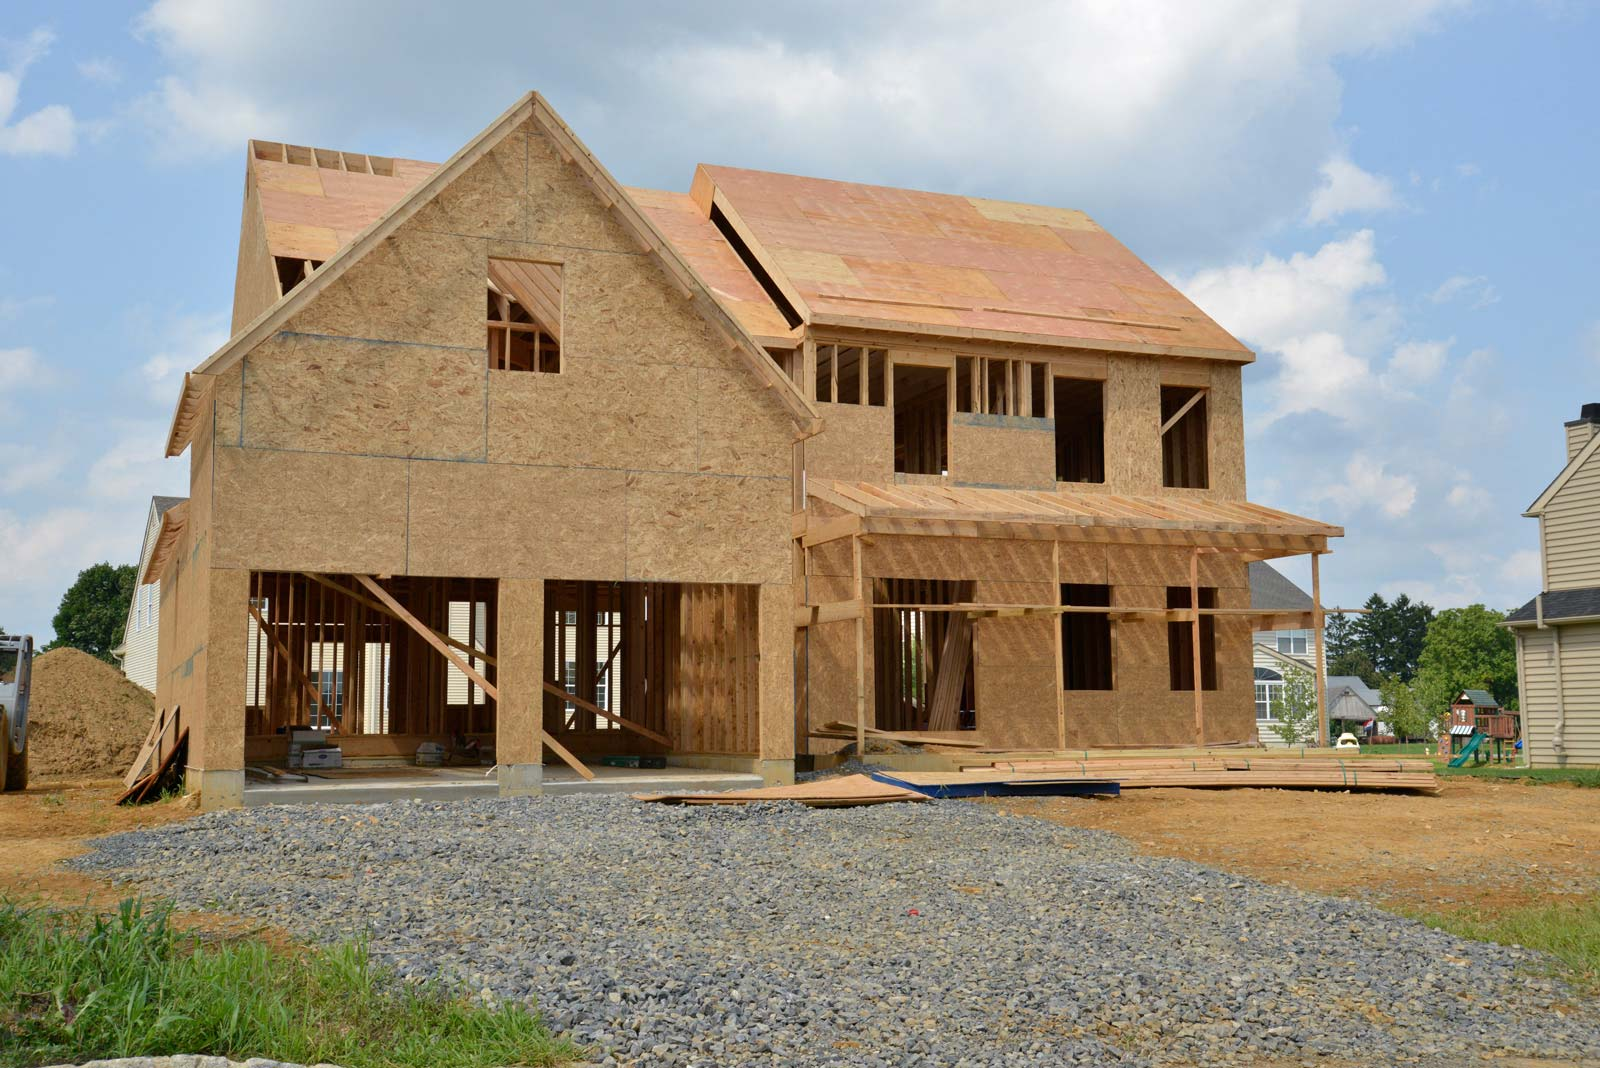 New Construction Inspection service